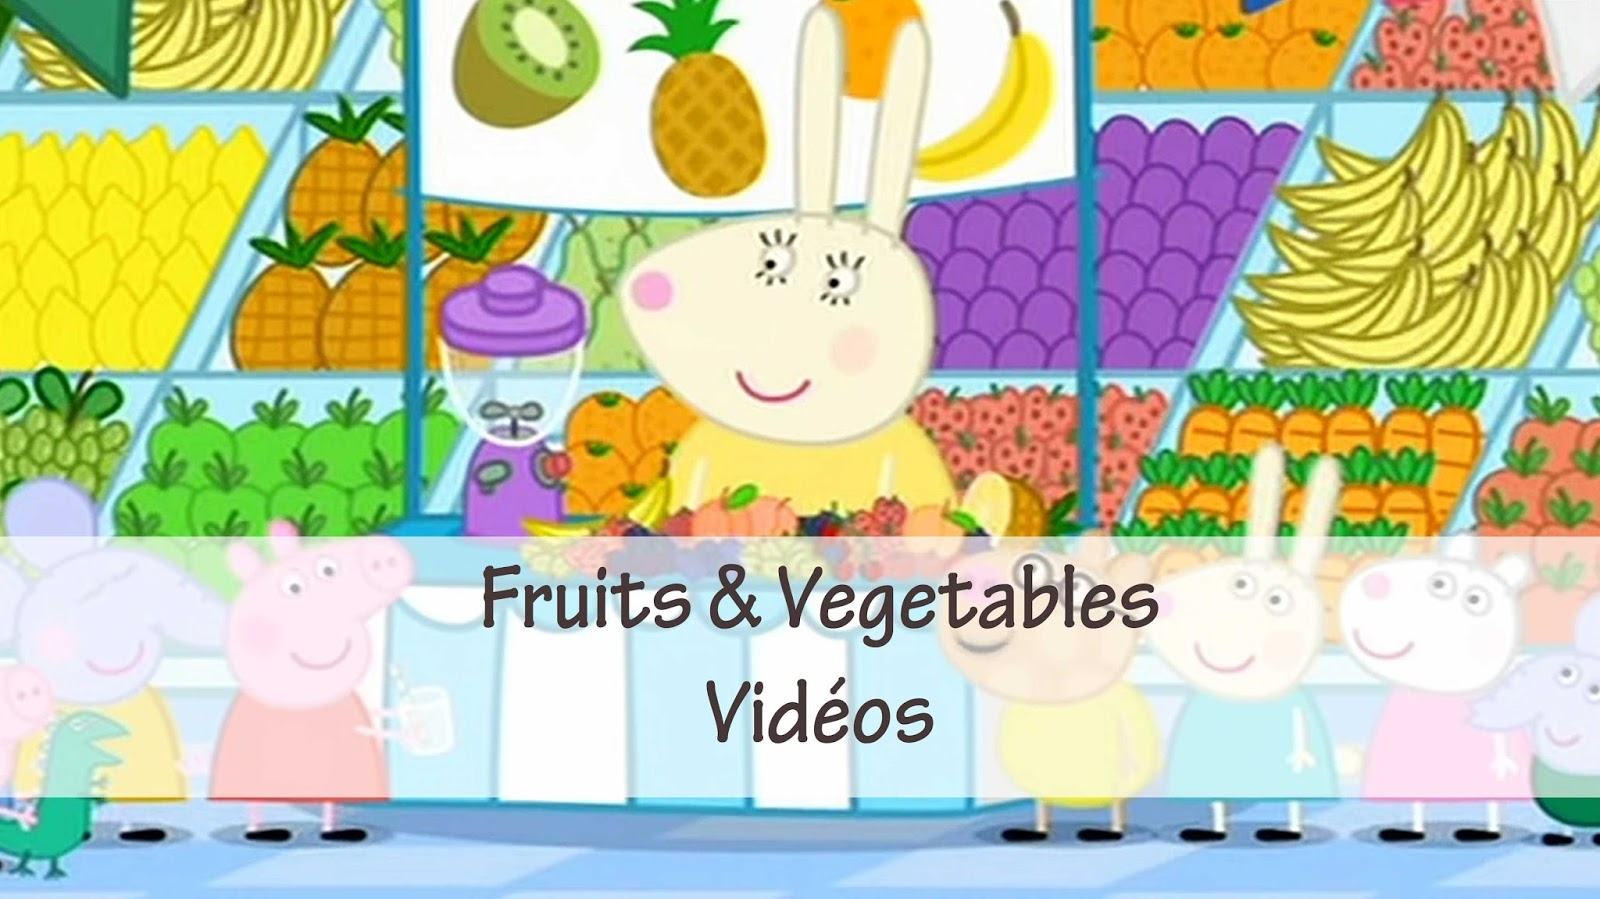 anglais-videos-fruits-legumes-vegetables-peppa pig